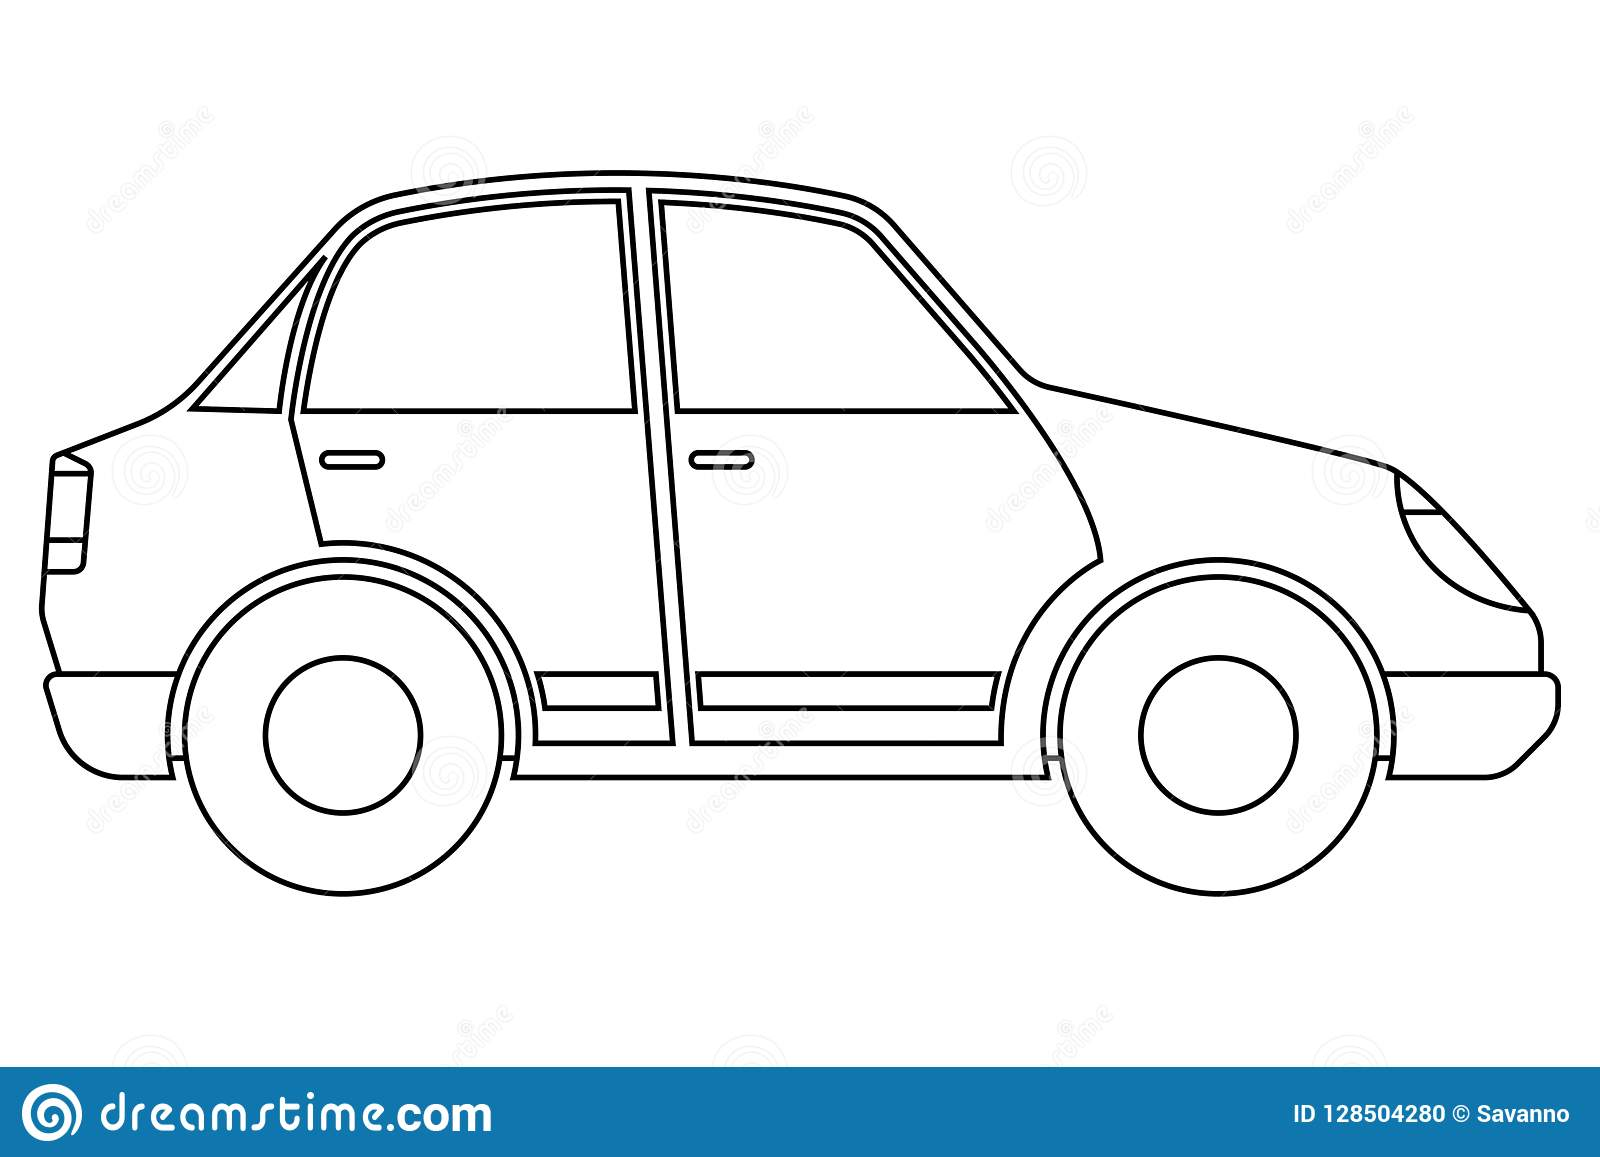 Car Outline Icon Stock Vector Illustration Of Design 128504280